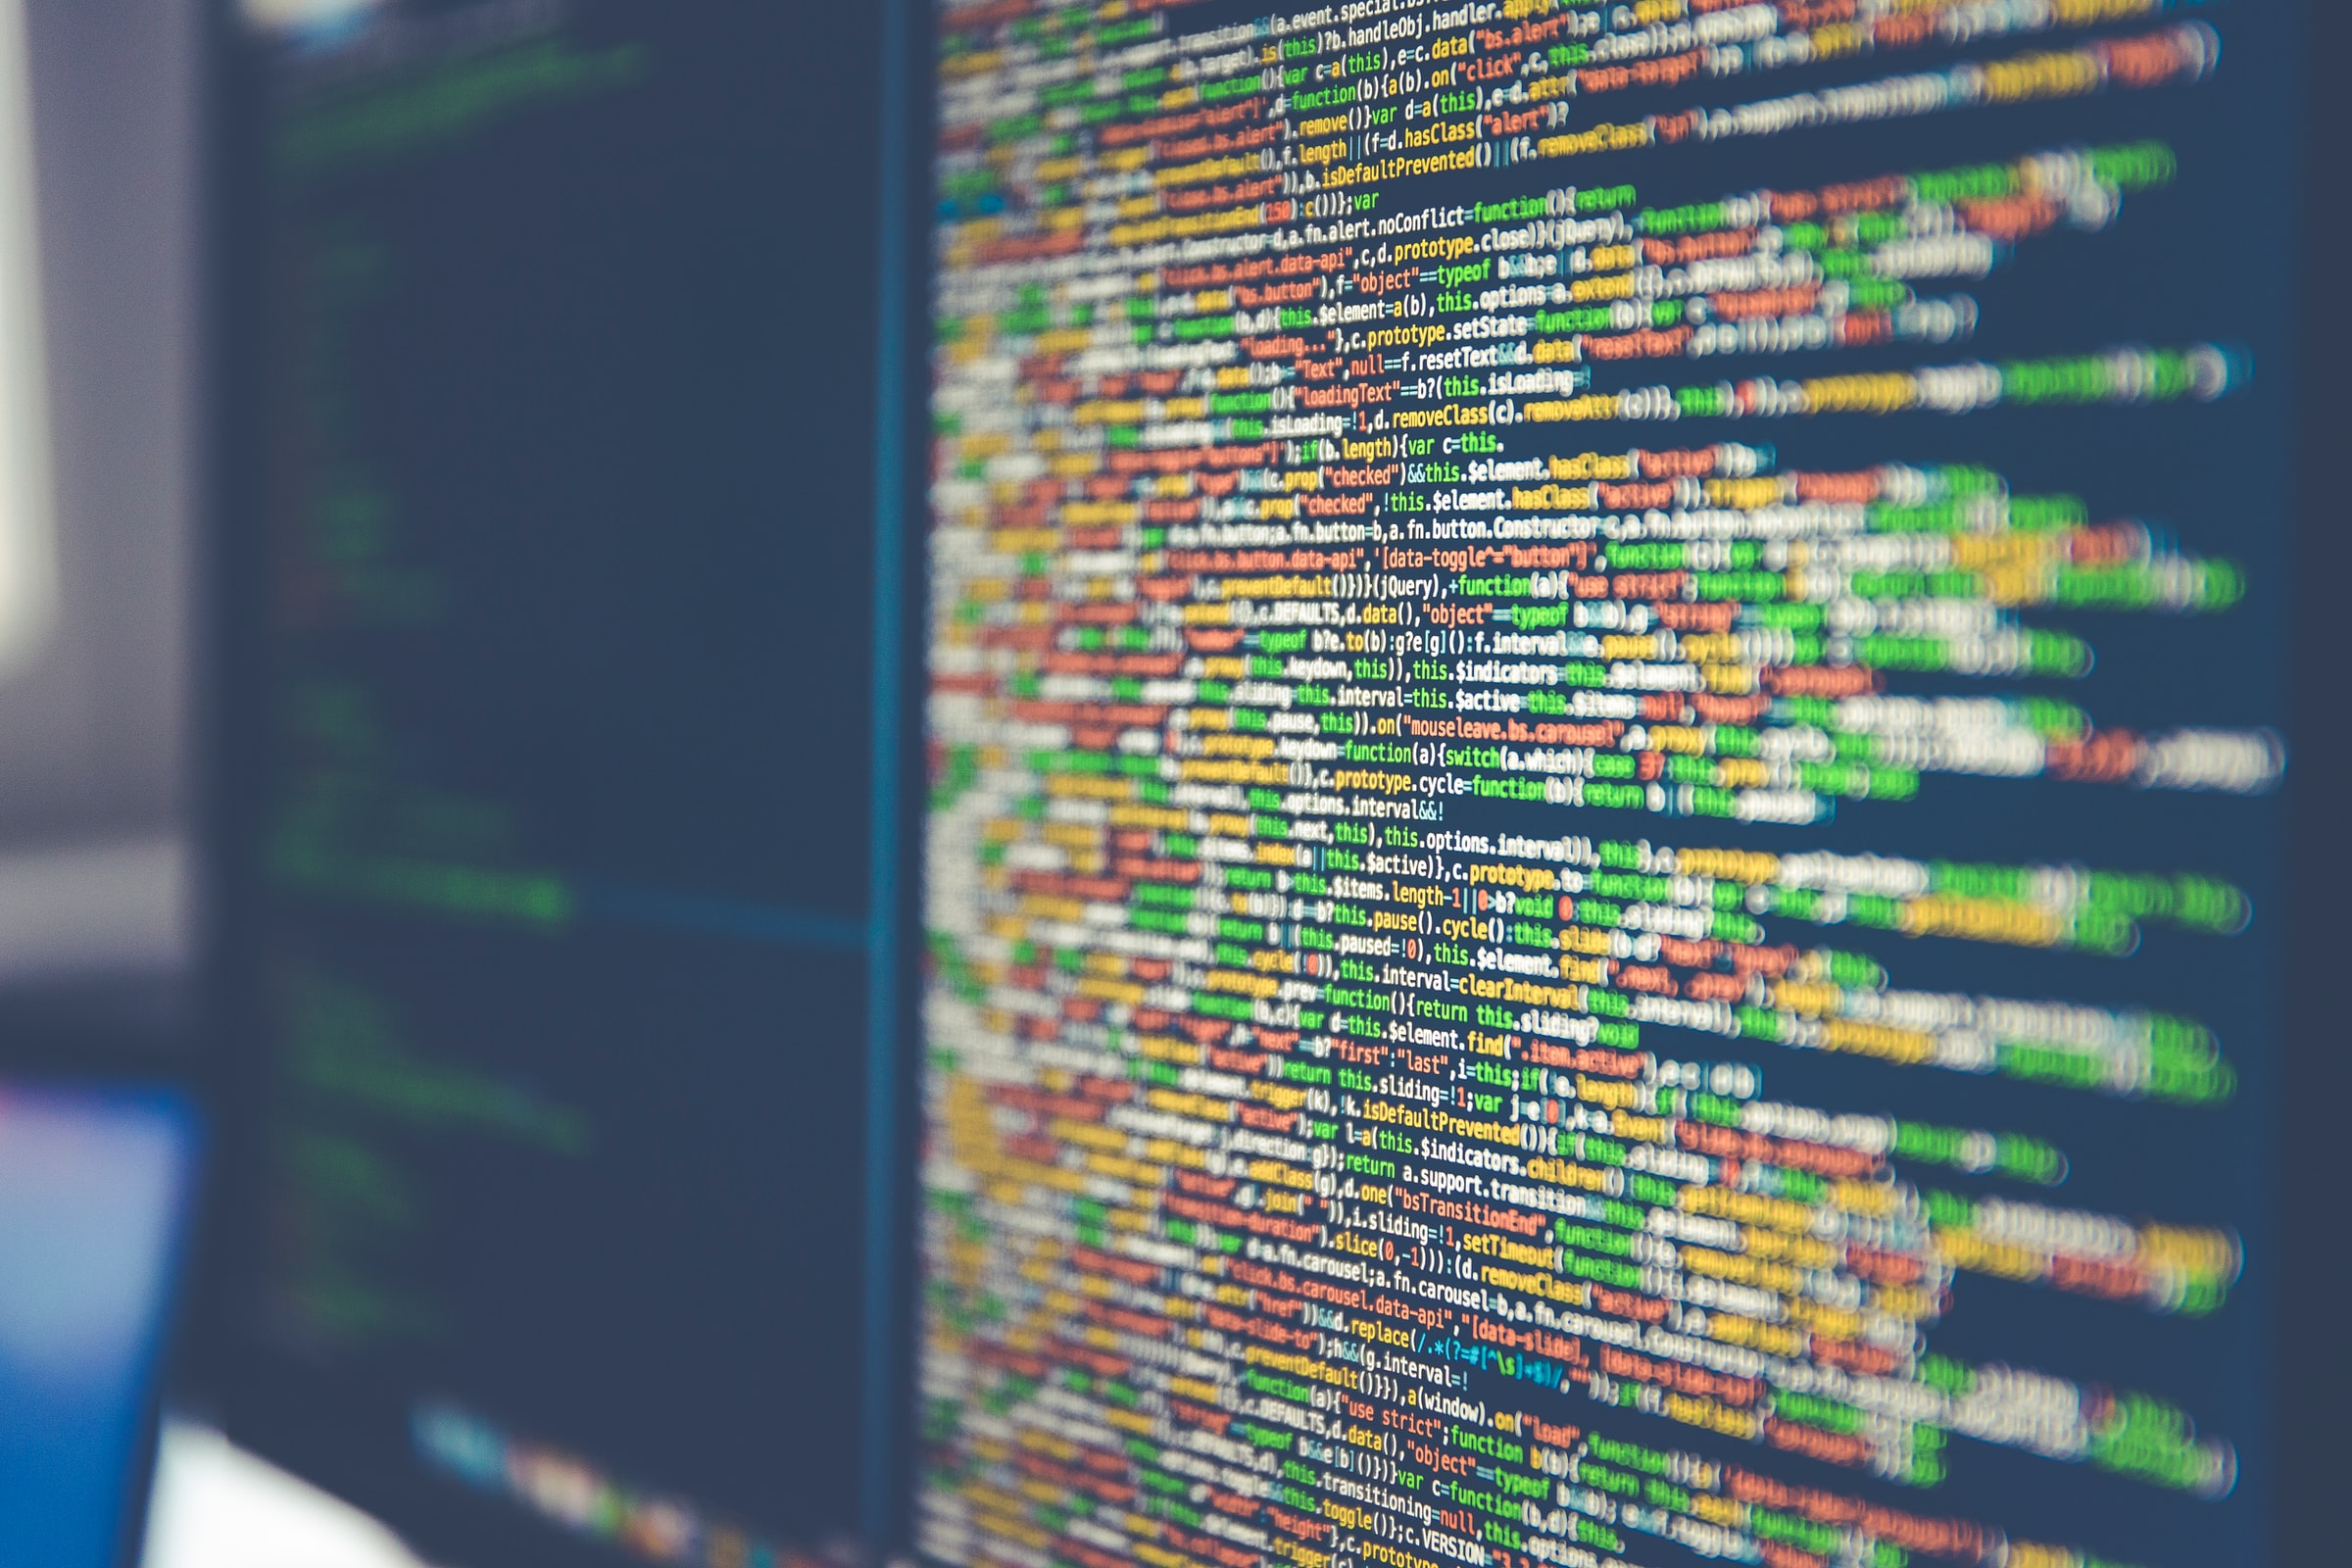 Machine learning is about designing and using computer algorithms to find patterns in data